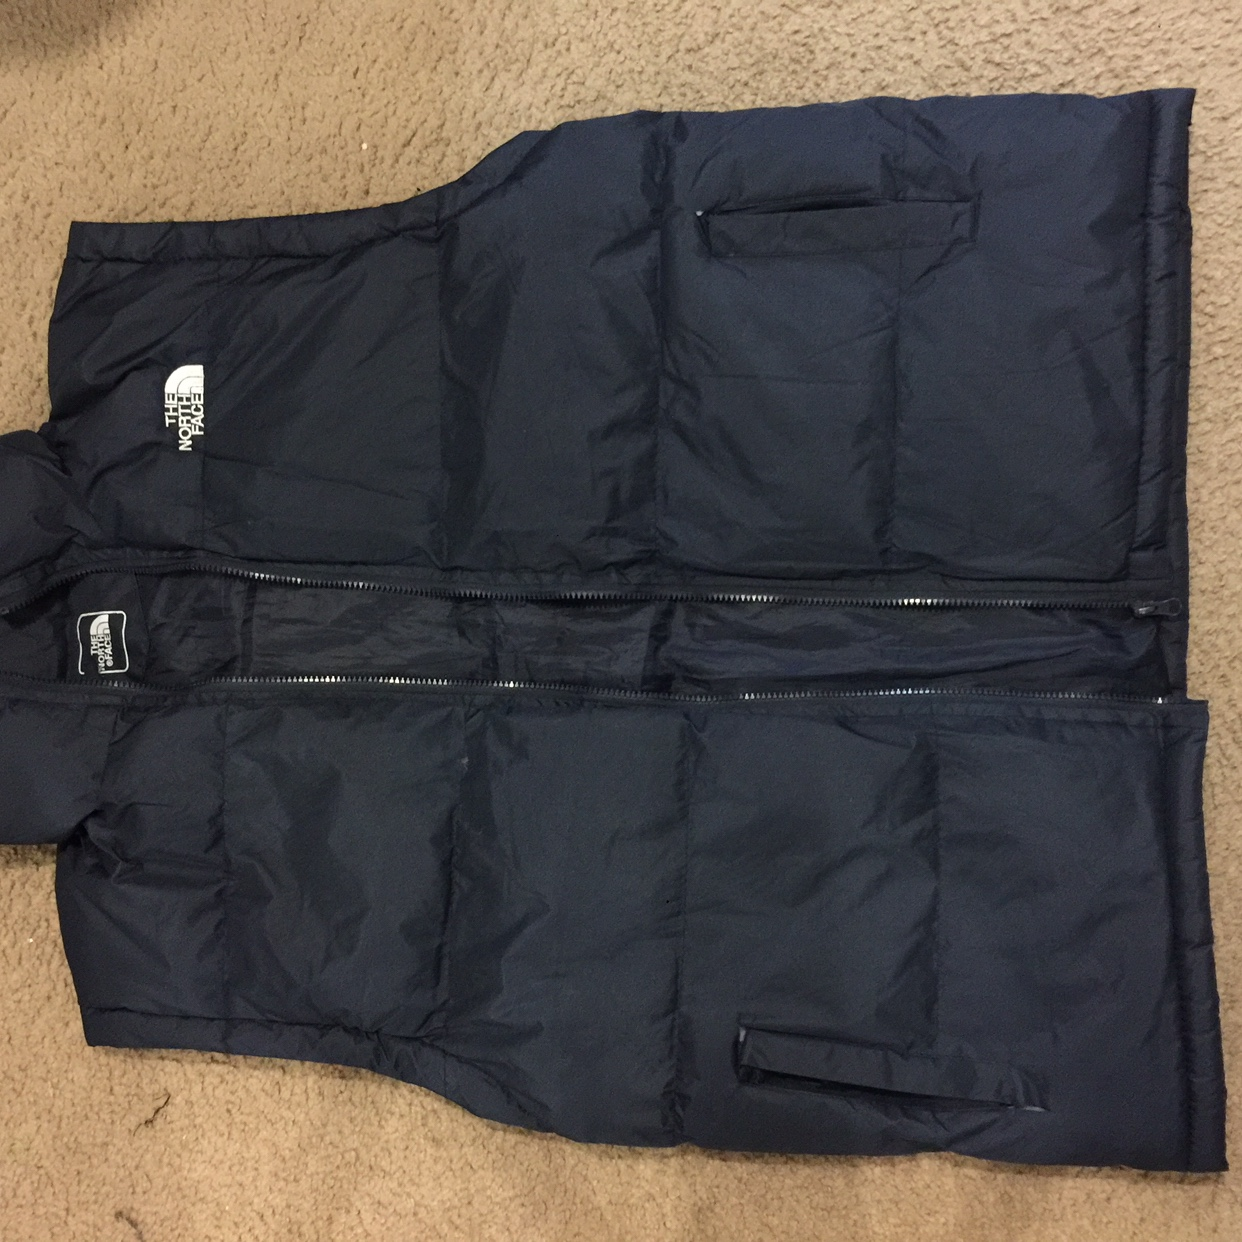 b92d58bef The North Face Bubble Vest. It's Navy Blue and fits... - Depop